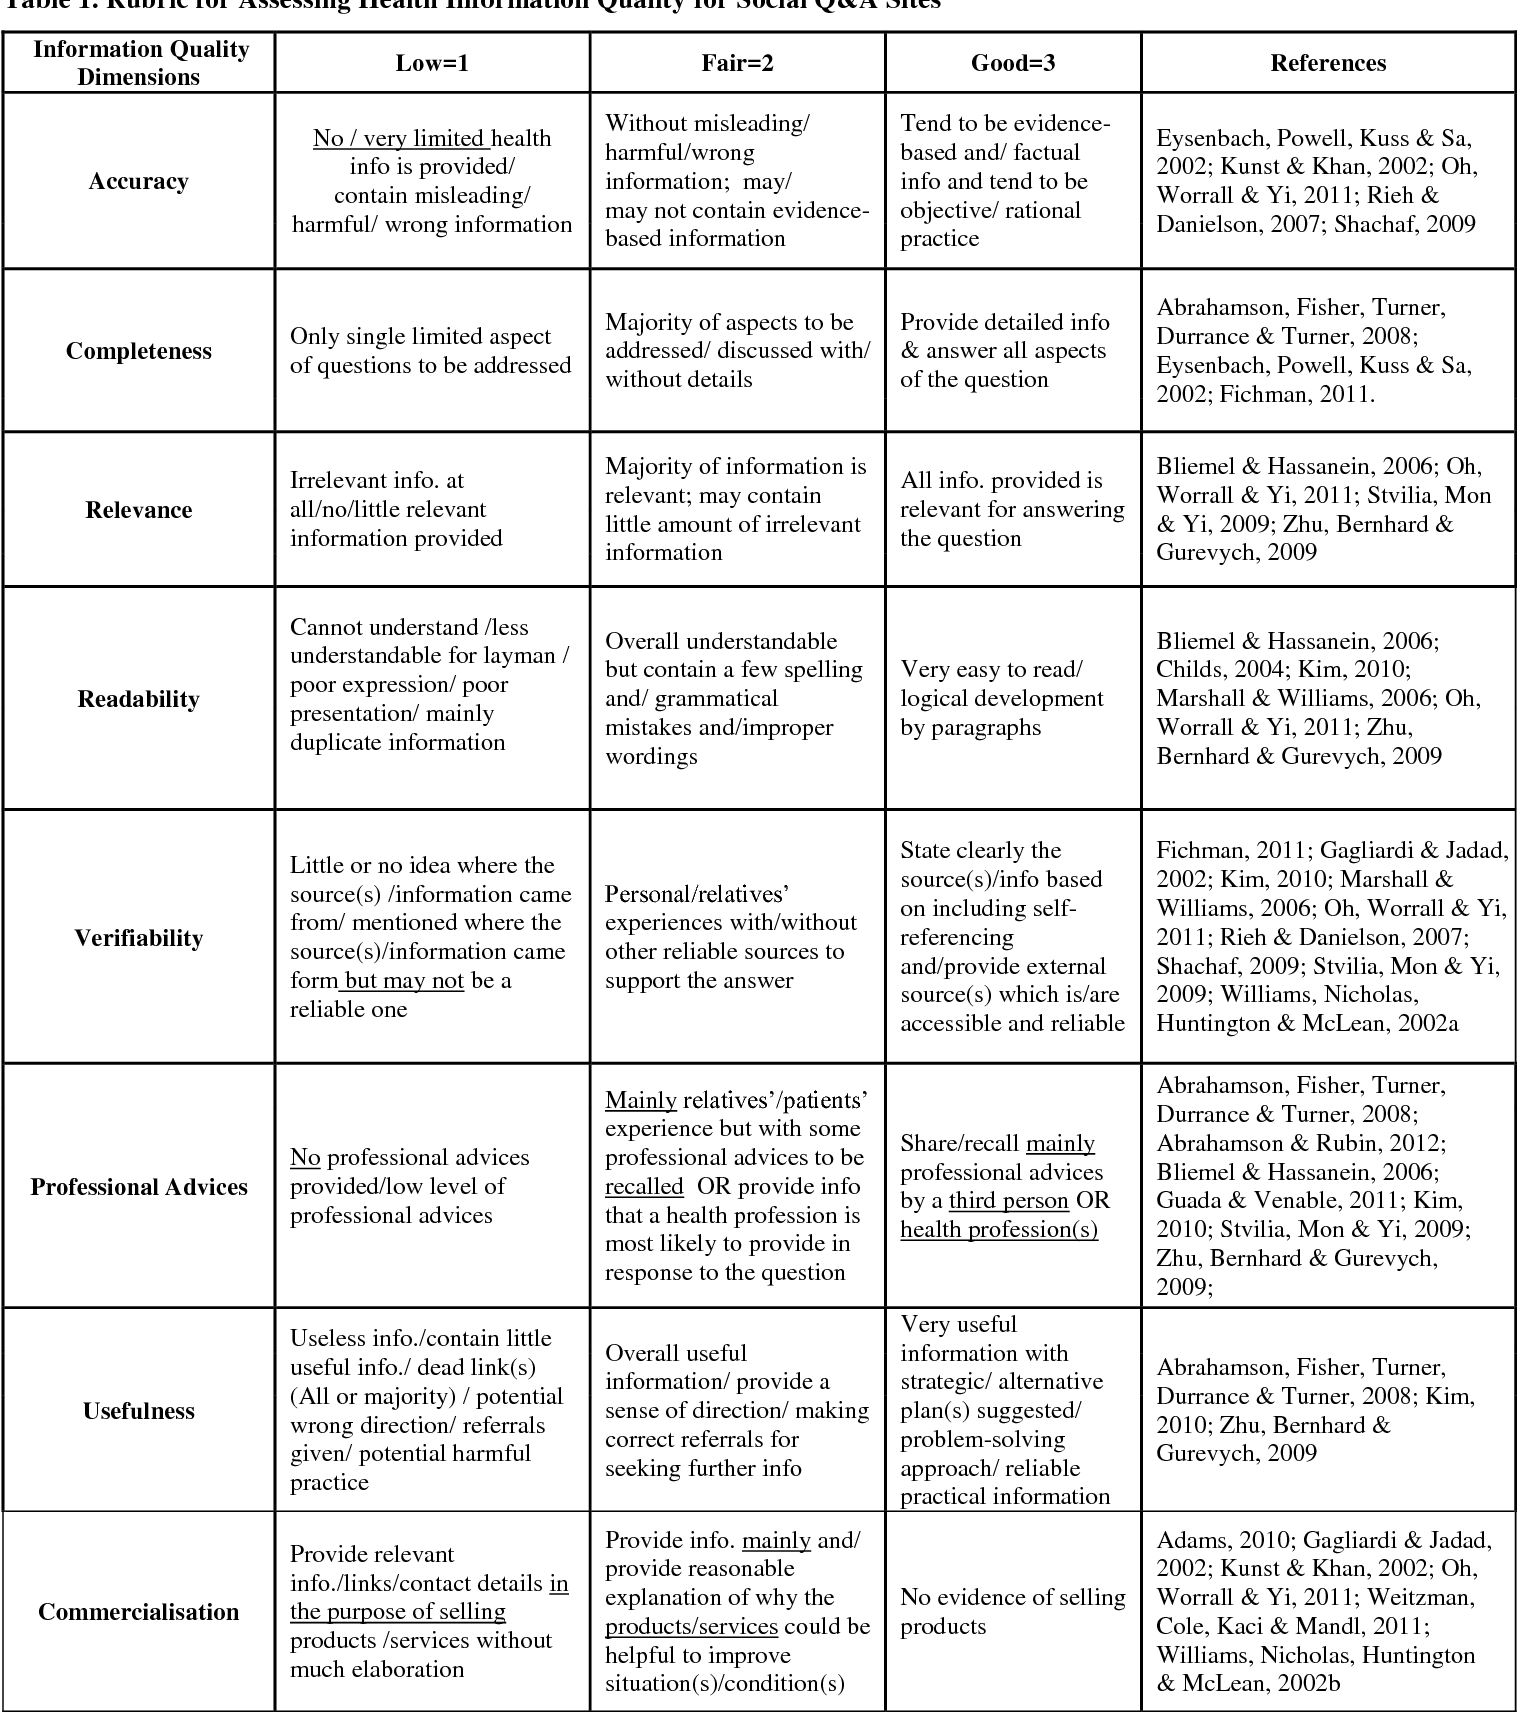 Cross-cultural quality comparison of online health